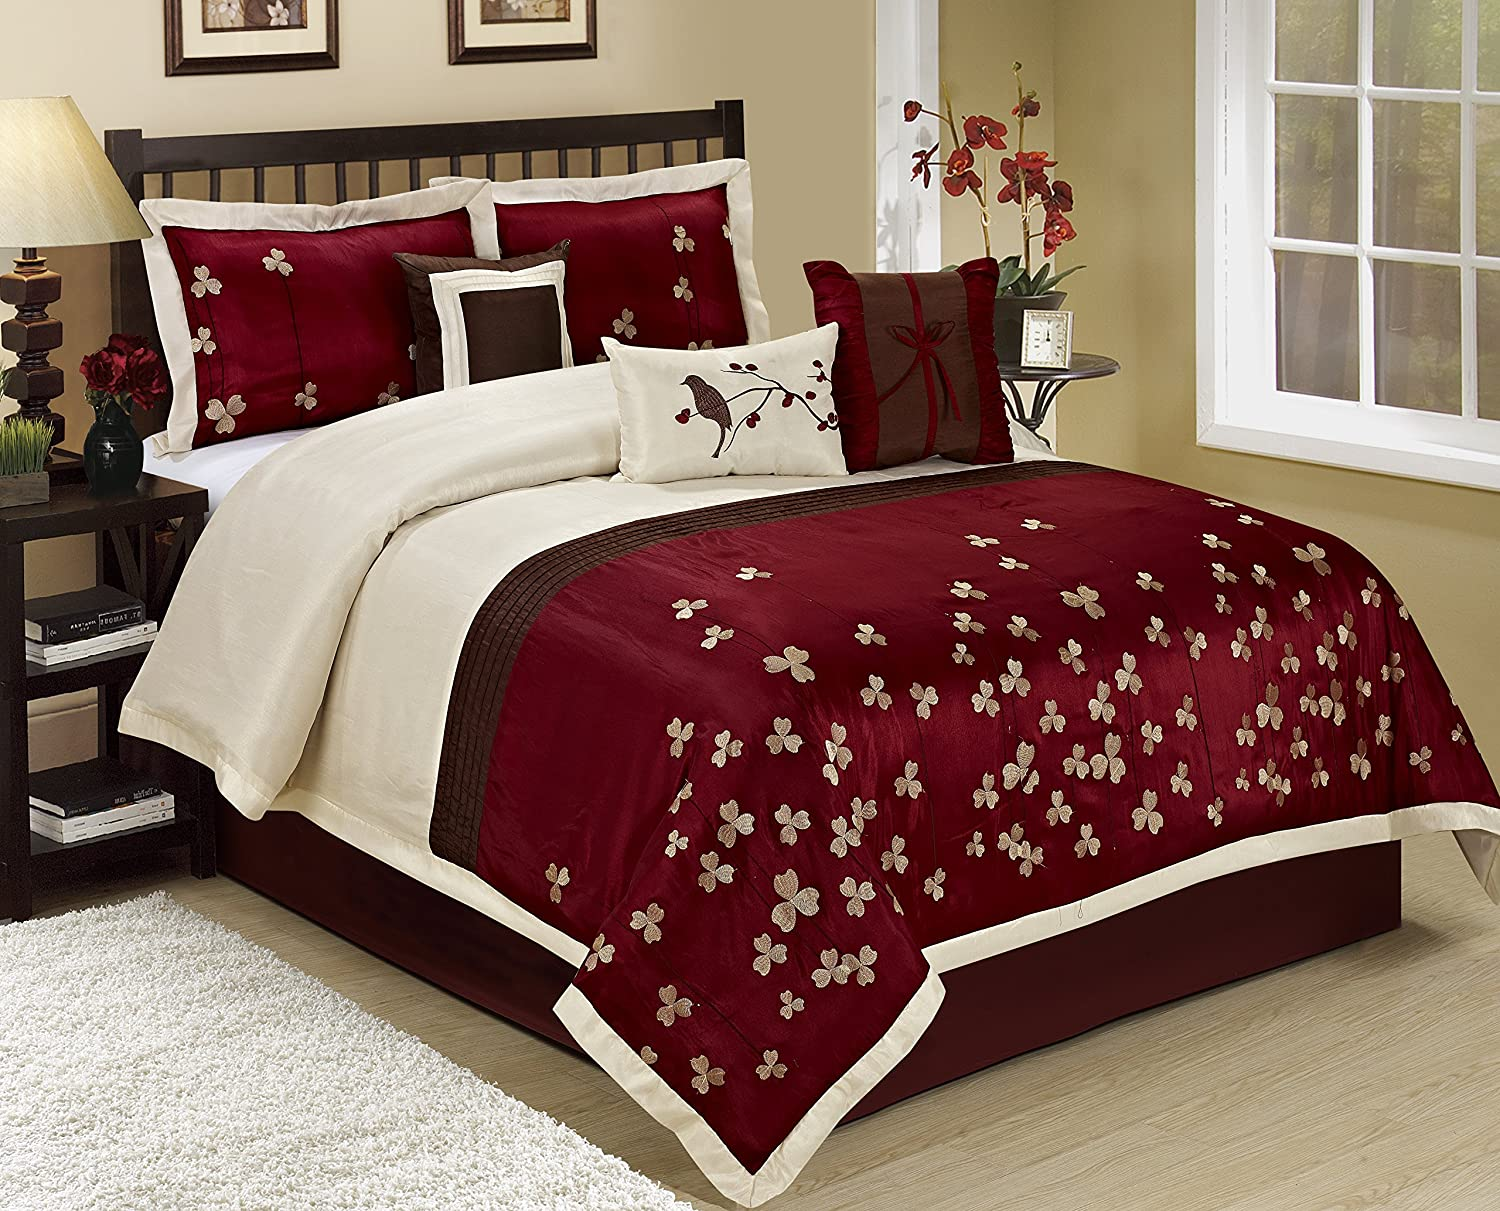 7 Piece Vienna Embroidered Comforter Set Queen King CalKing Size Queen, Burgundy